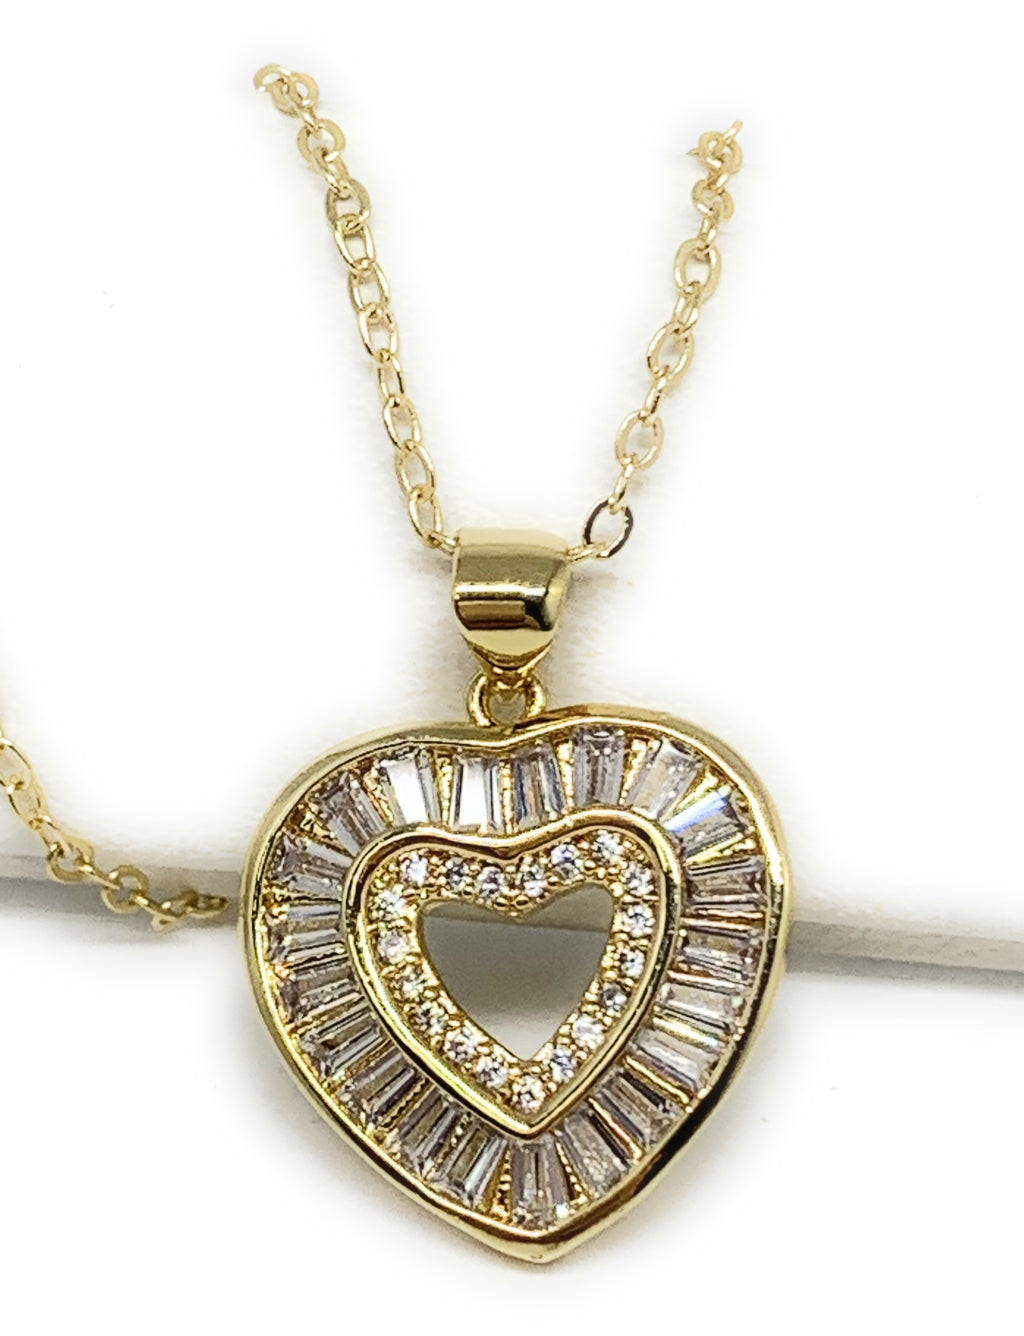 Gold Plated Layered Heart Cubic Zirconia Pendant Necklace Chain 20""